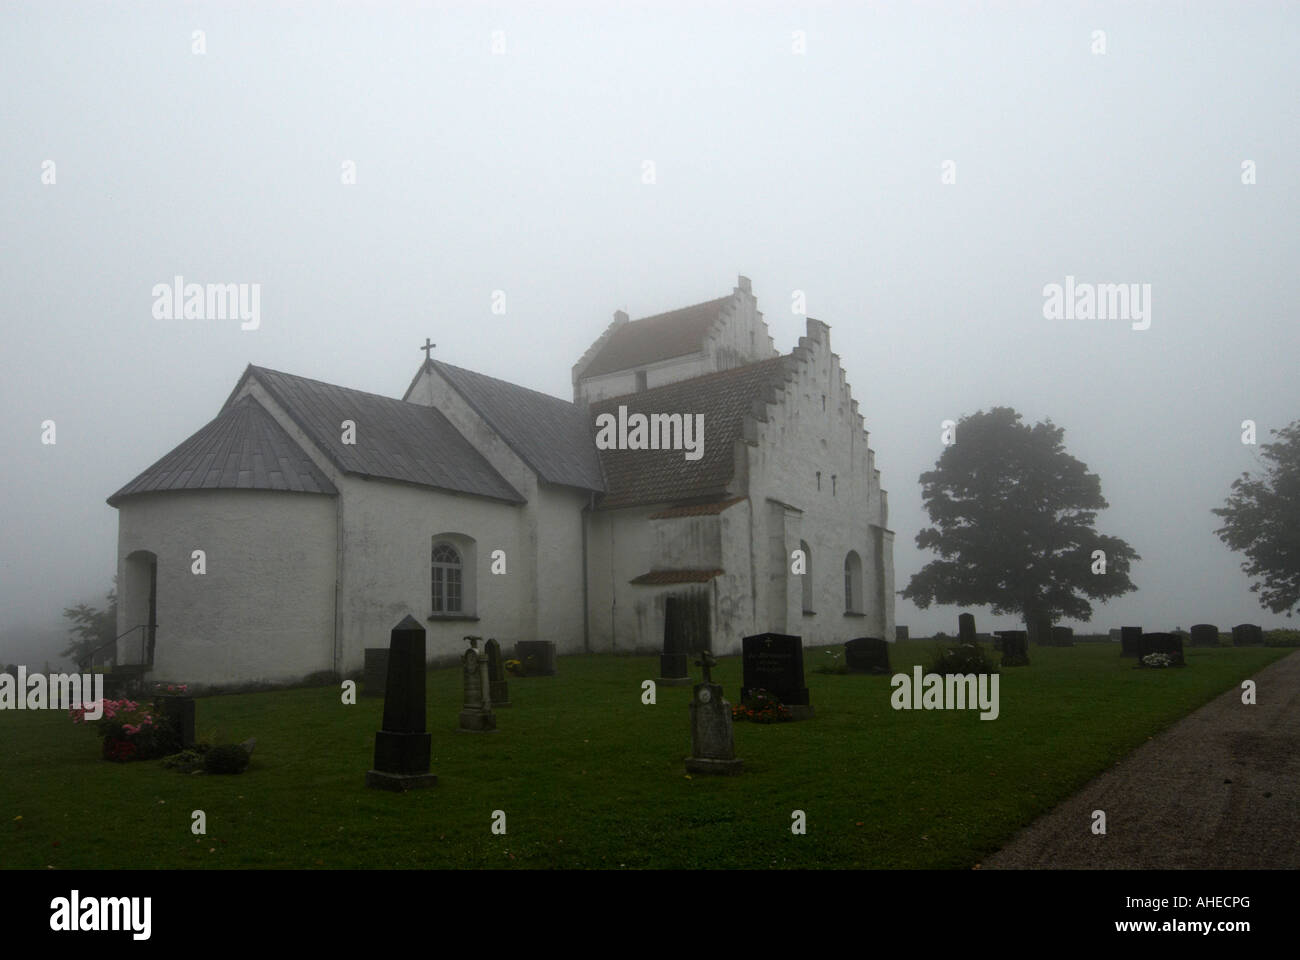 Ravlunda church in Sweden - Stock Image